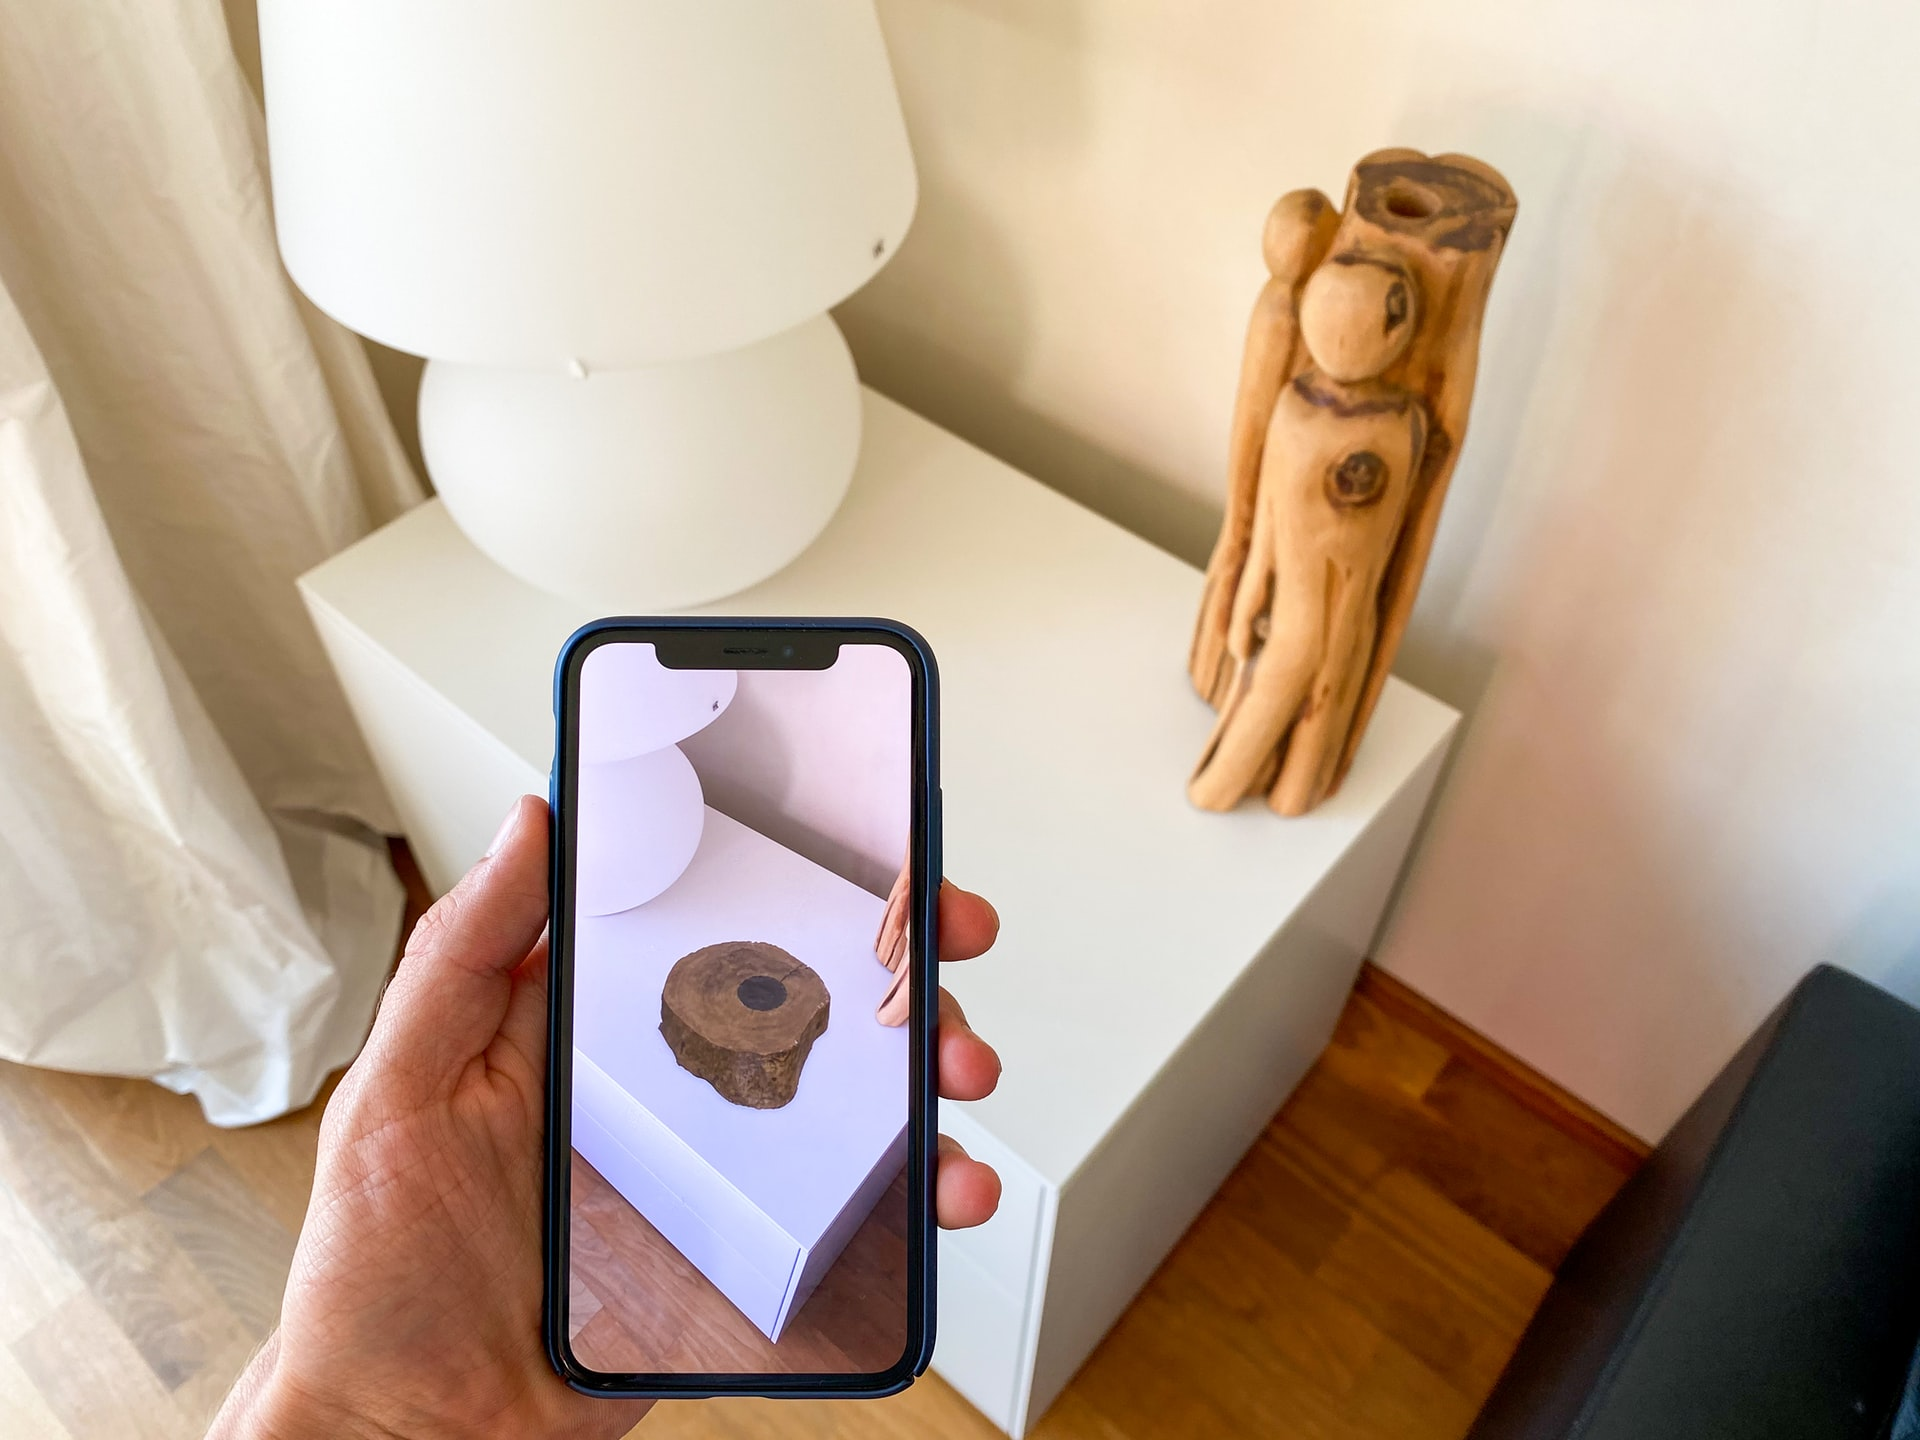 Volograms Releases the Volu App for Easy AR and VR Content Creation